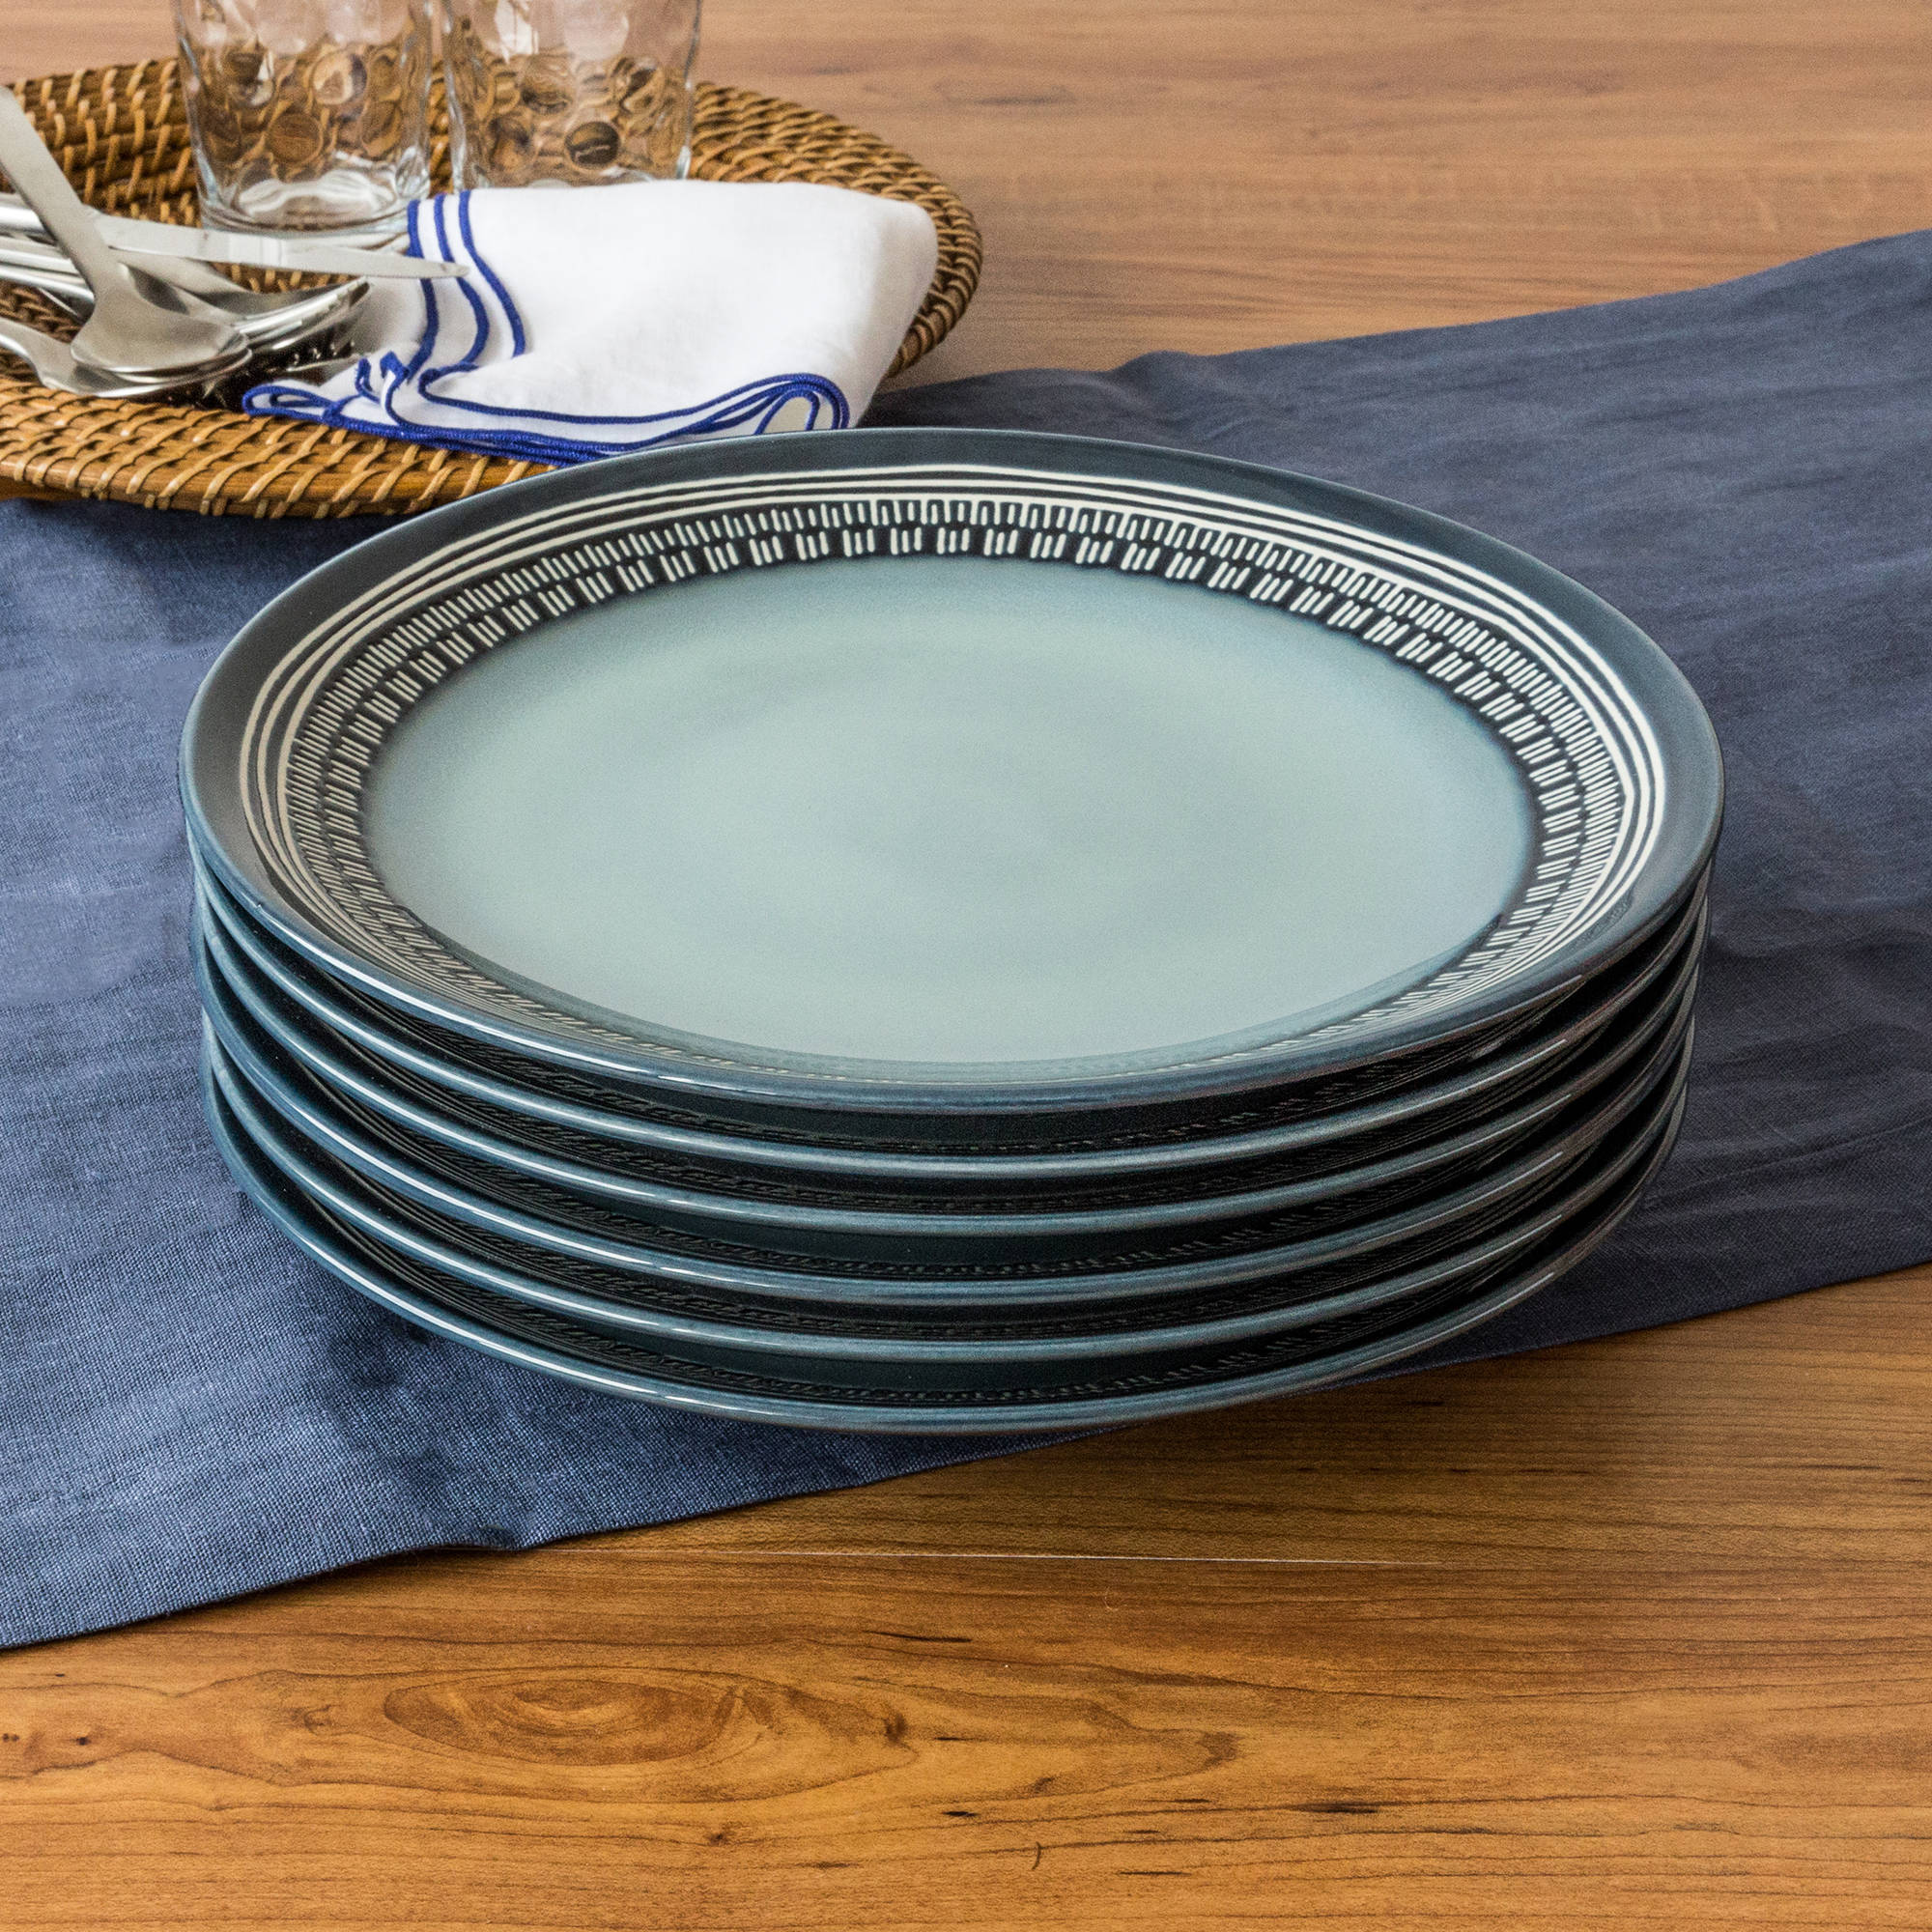 Better Homes and Gardens Teal Medallion Dinner Plates Teal Set of 6 - Walmart.com & Better Homes and Gardens Teal Medallion Dinner Plates Teal Set of ...